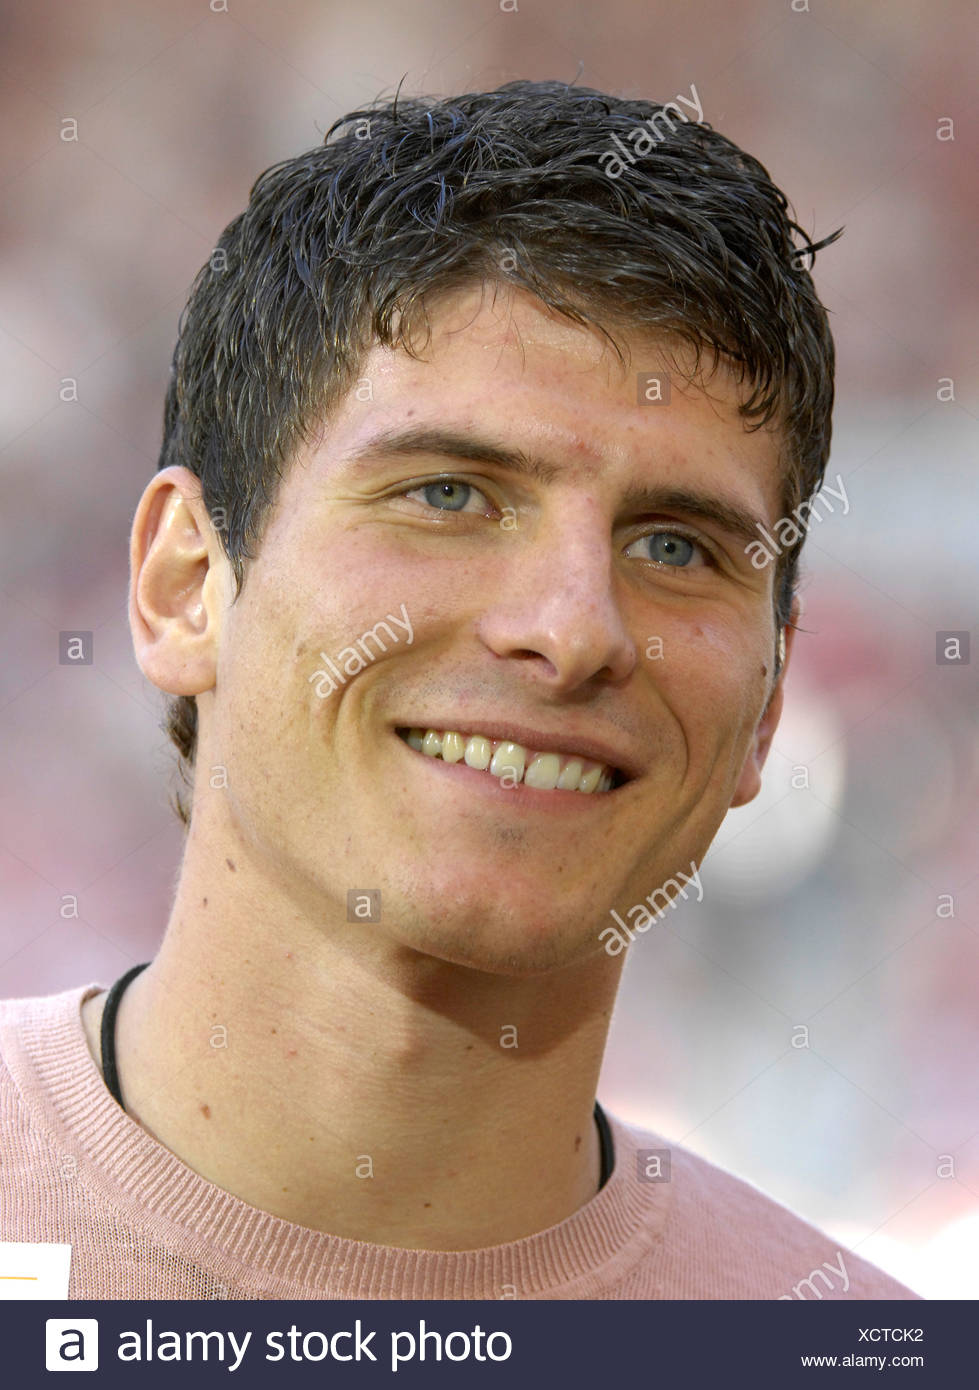 German national team player Mario GOMEZ Stock Photo